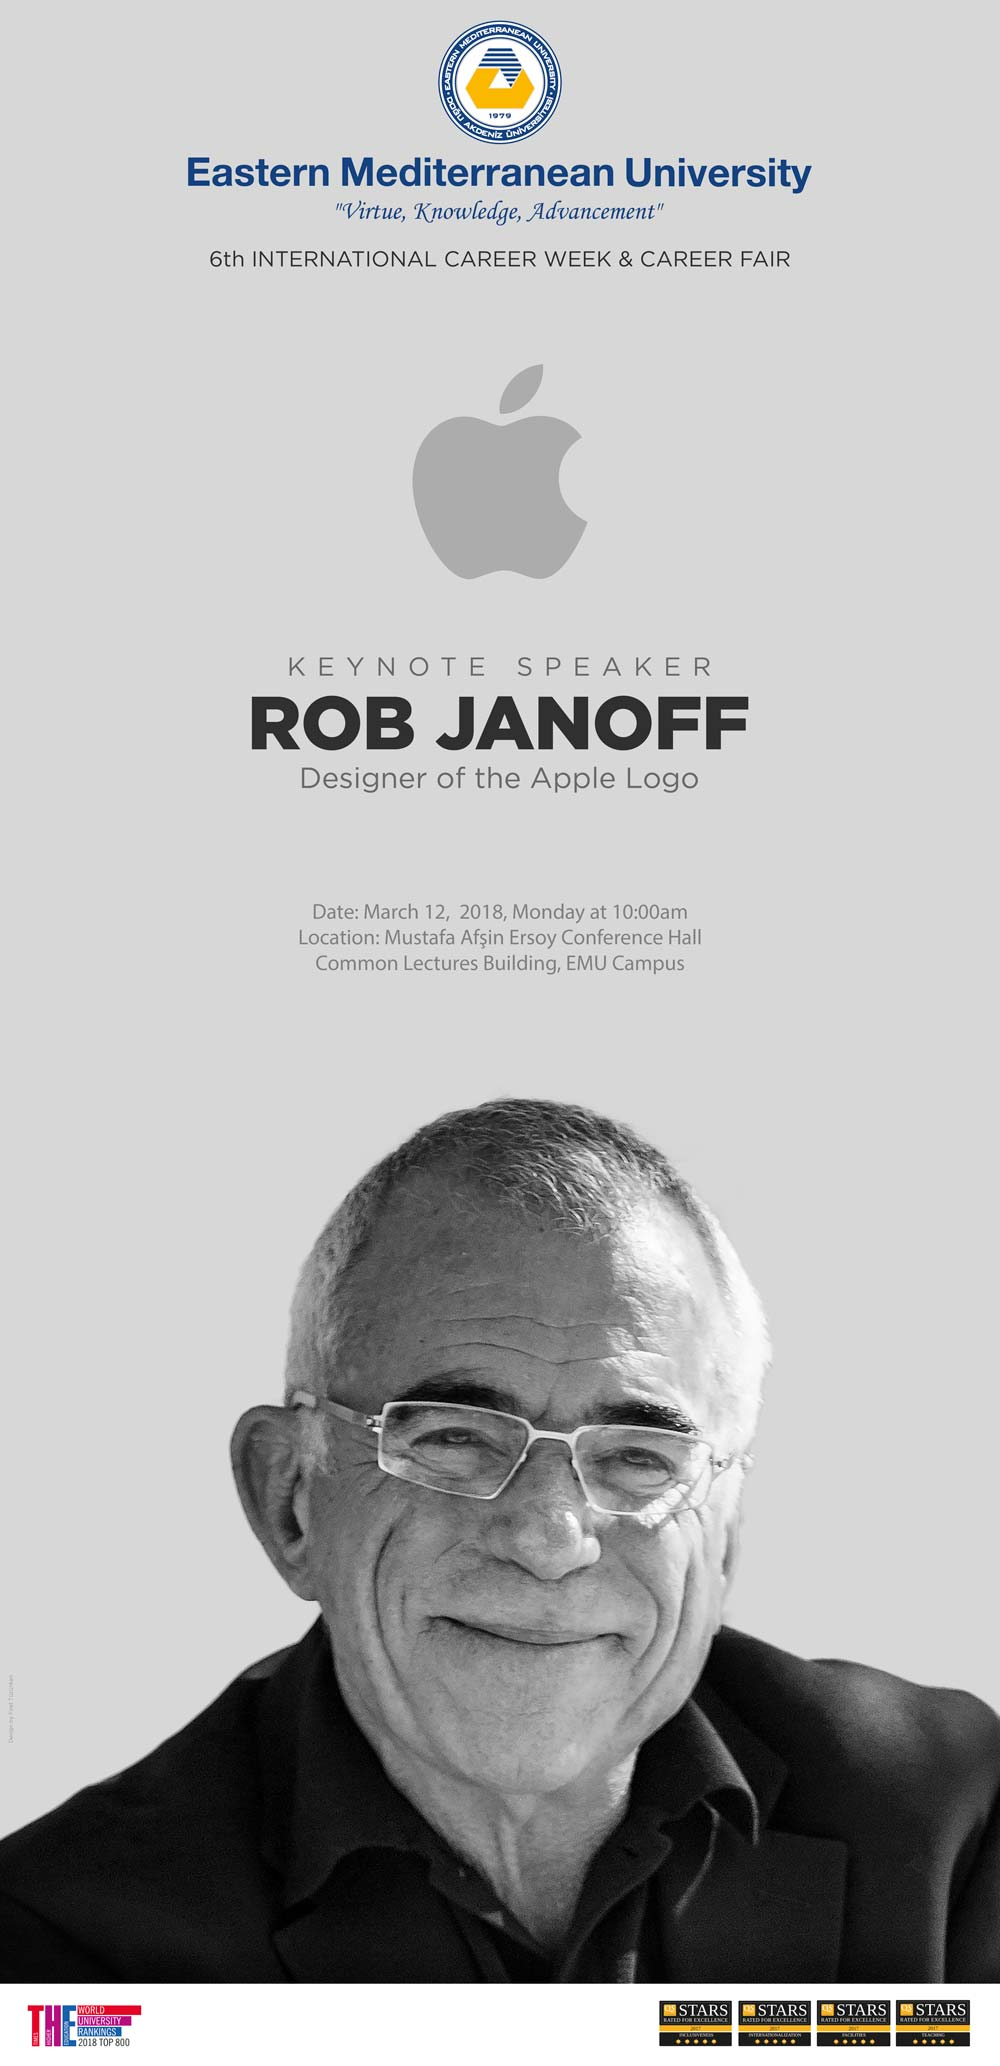 APPLE LOGO DESIGNER ROB JANOFF COMING TO EMU